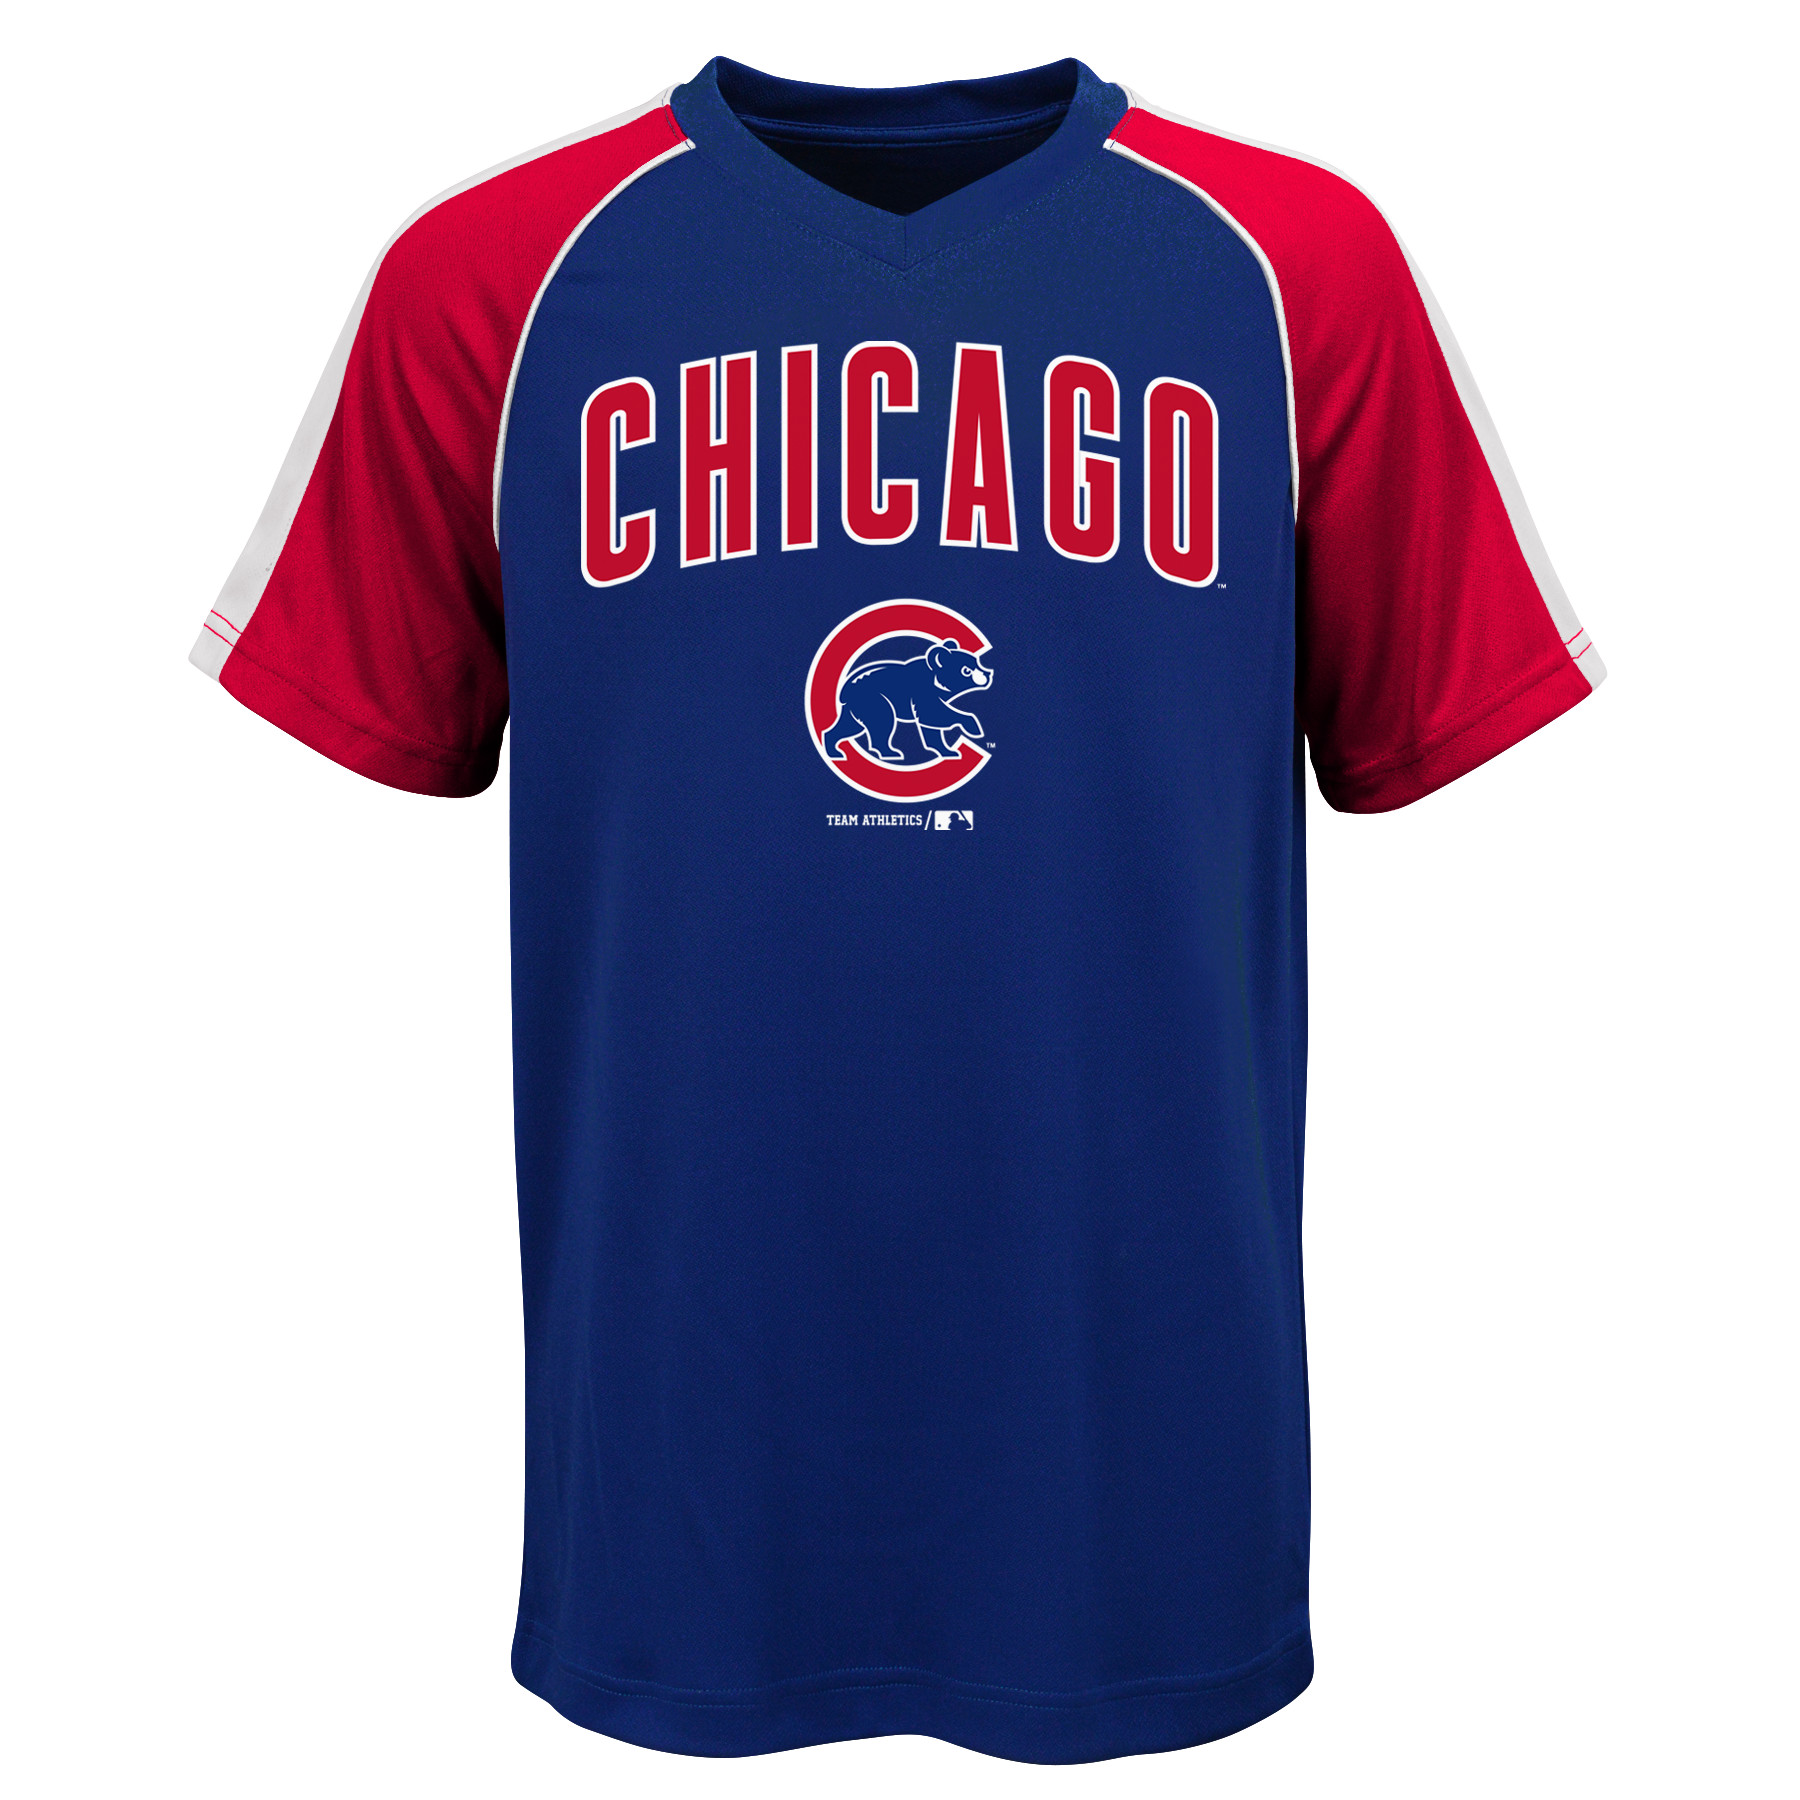 MLB Chicago CUBS TEE Short Sleeve Boys Fashion Jersey Tee 100% Polyester Pin Dot Mesh Jersey Team Tee 4-18